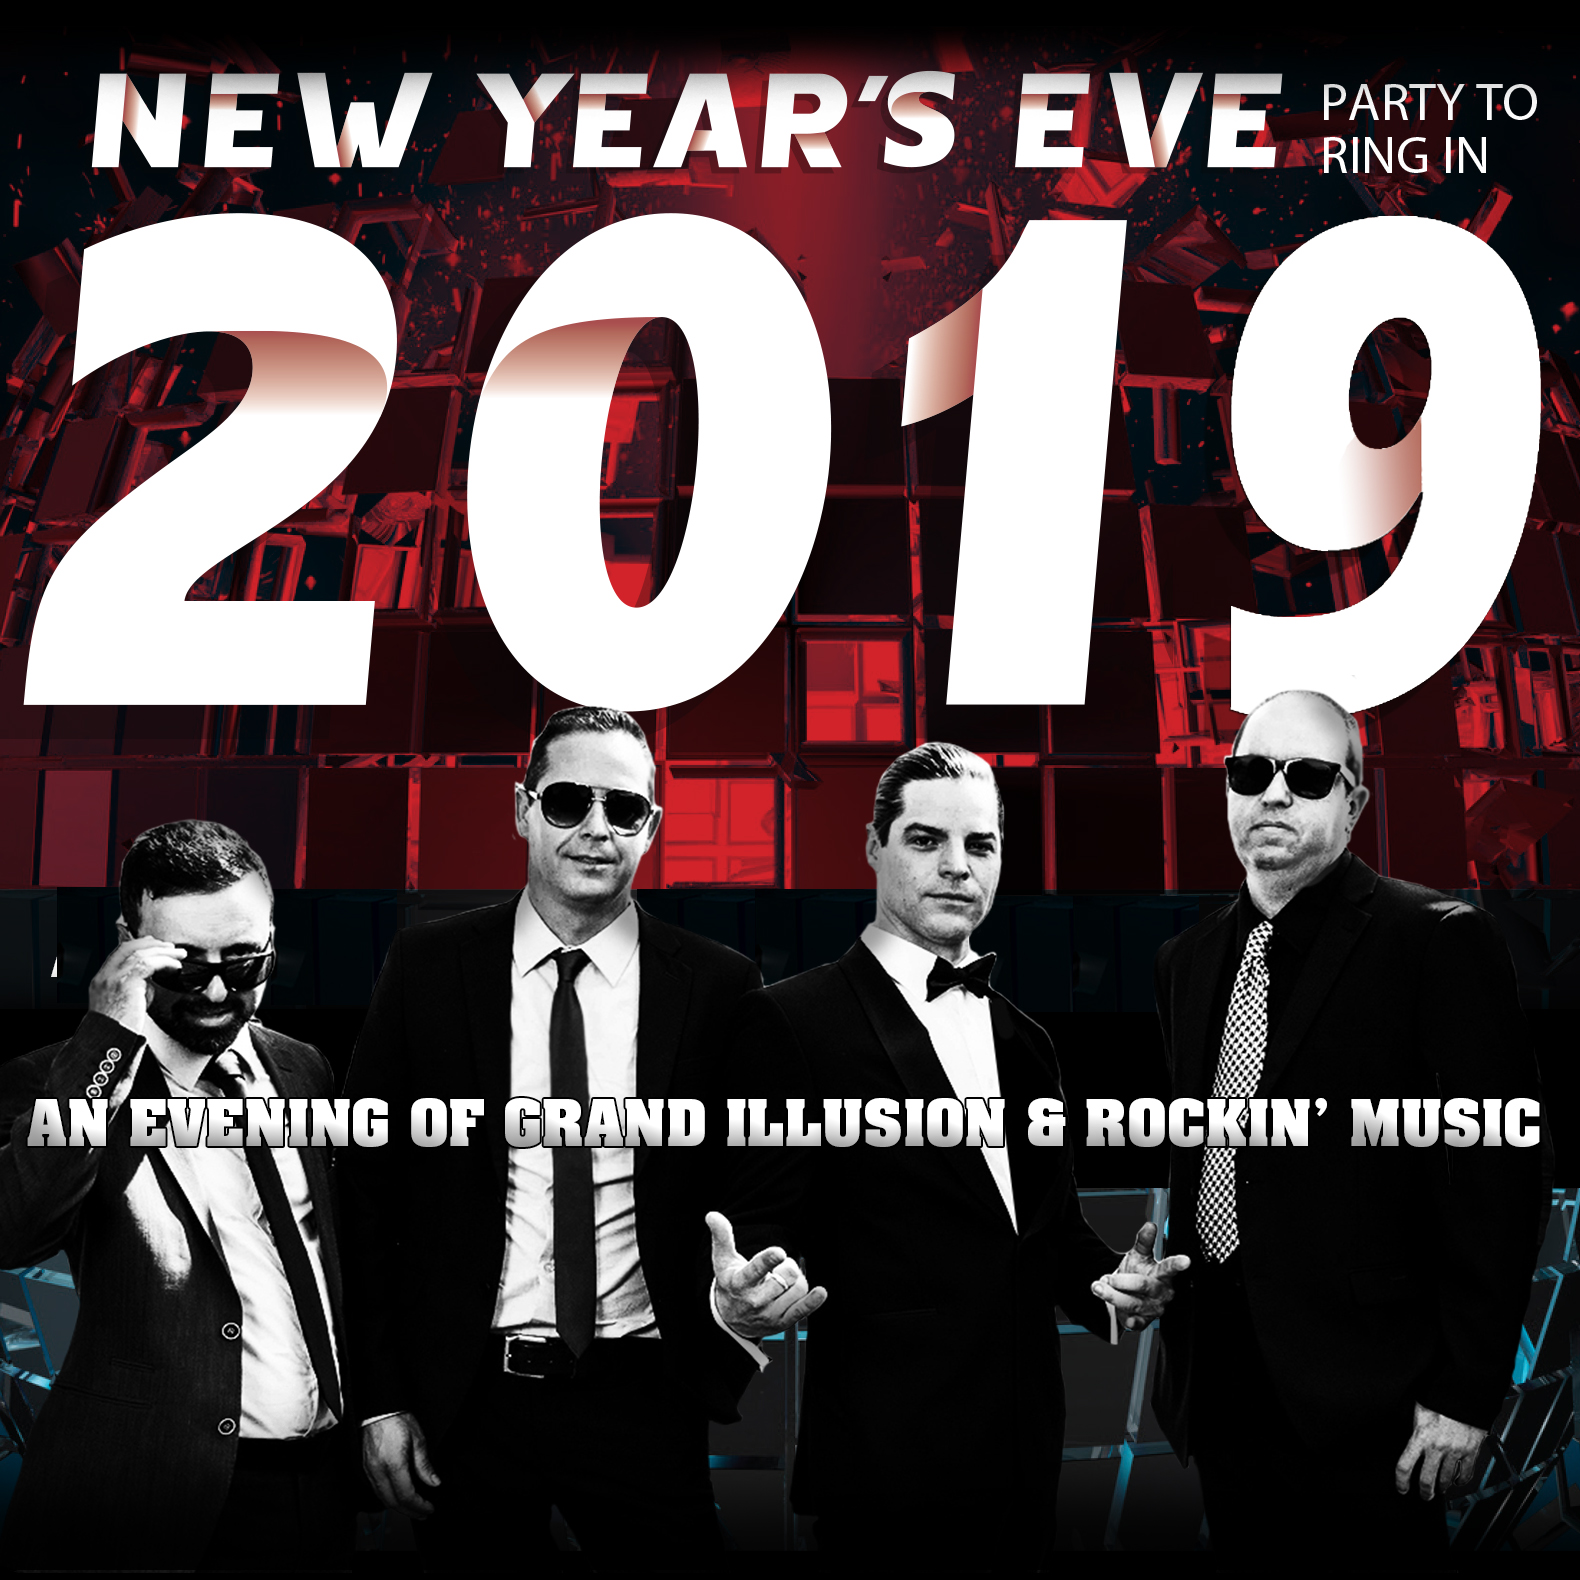 New Year's Eve Gala 2018 - VEGAS STYLE! At The Greg Frewin Theatre - December 31st, 2018.